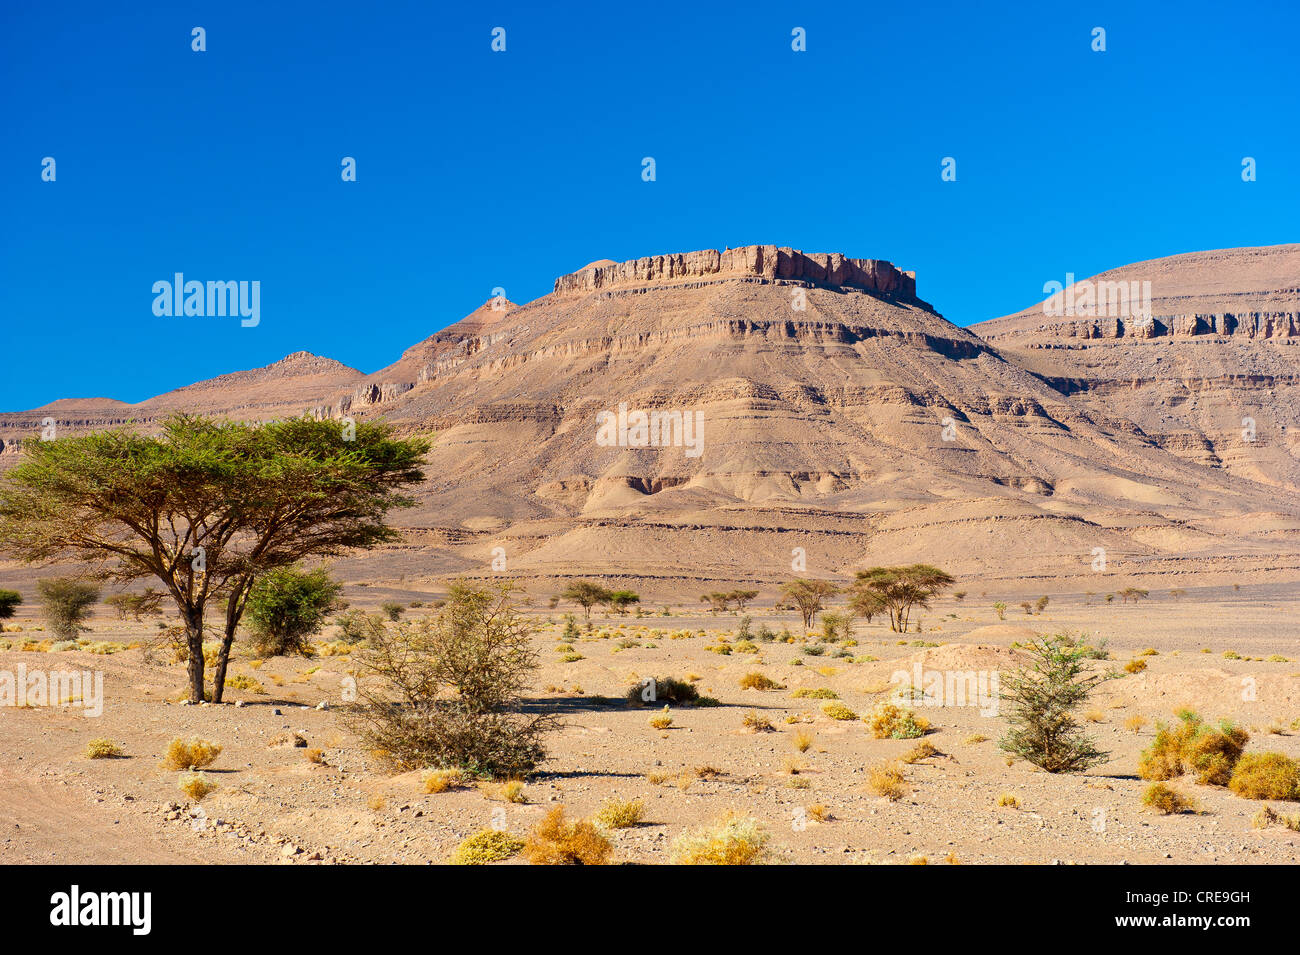 Acacias, thorny plants and a table mountain in a dry stone desert, Draa Valley, southern Morocco, Morocco, Africa - Stock Image